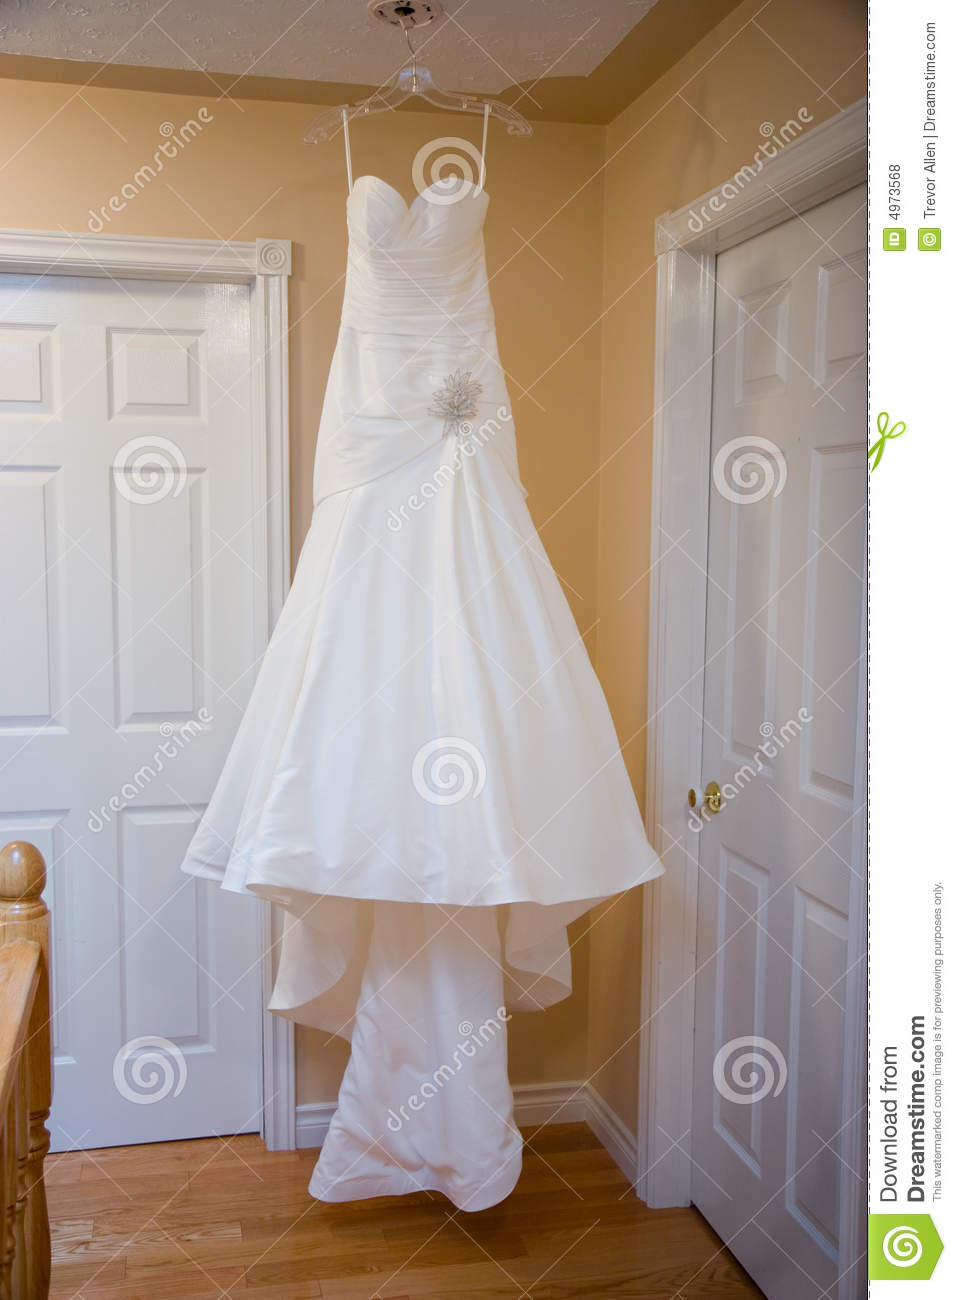 Hanging Wedding Dress stock photo. Image of doors, elegant - 4973568